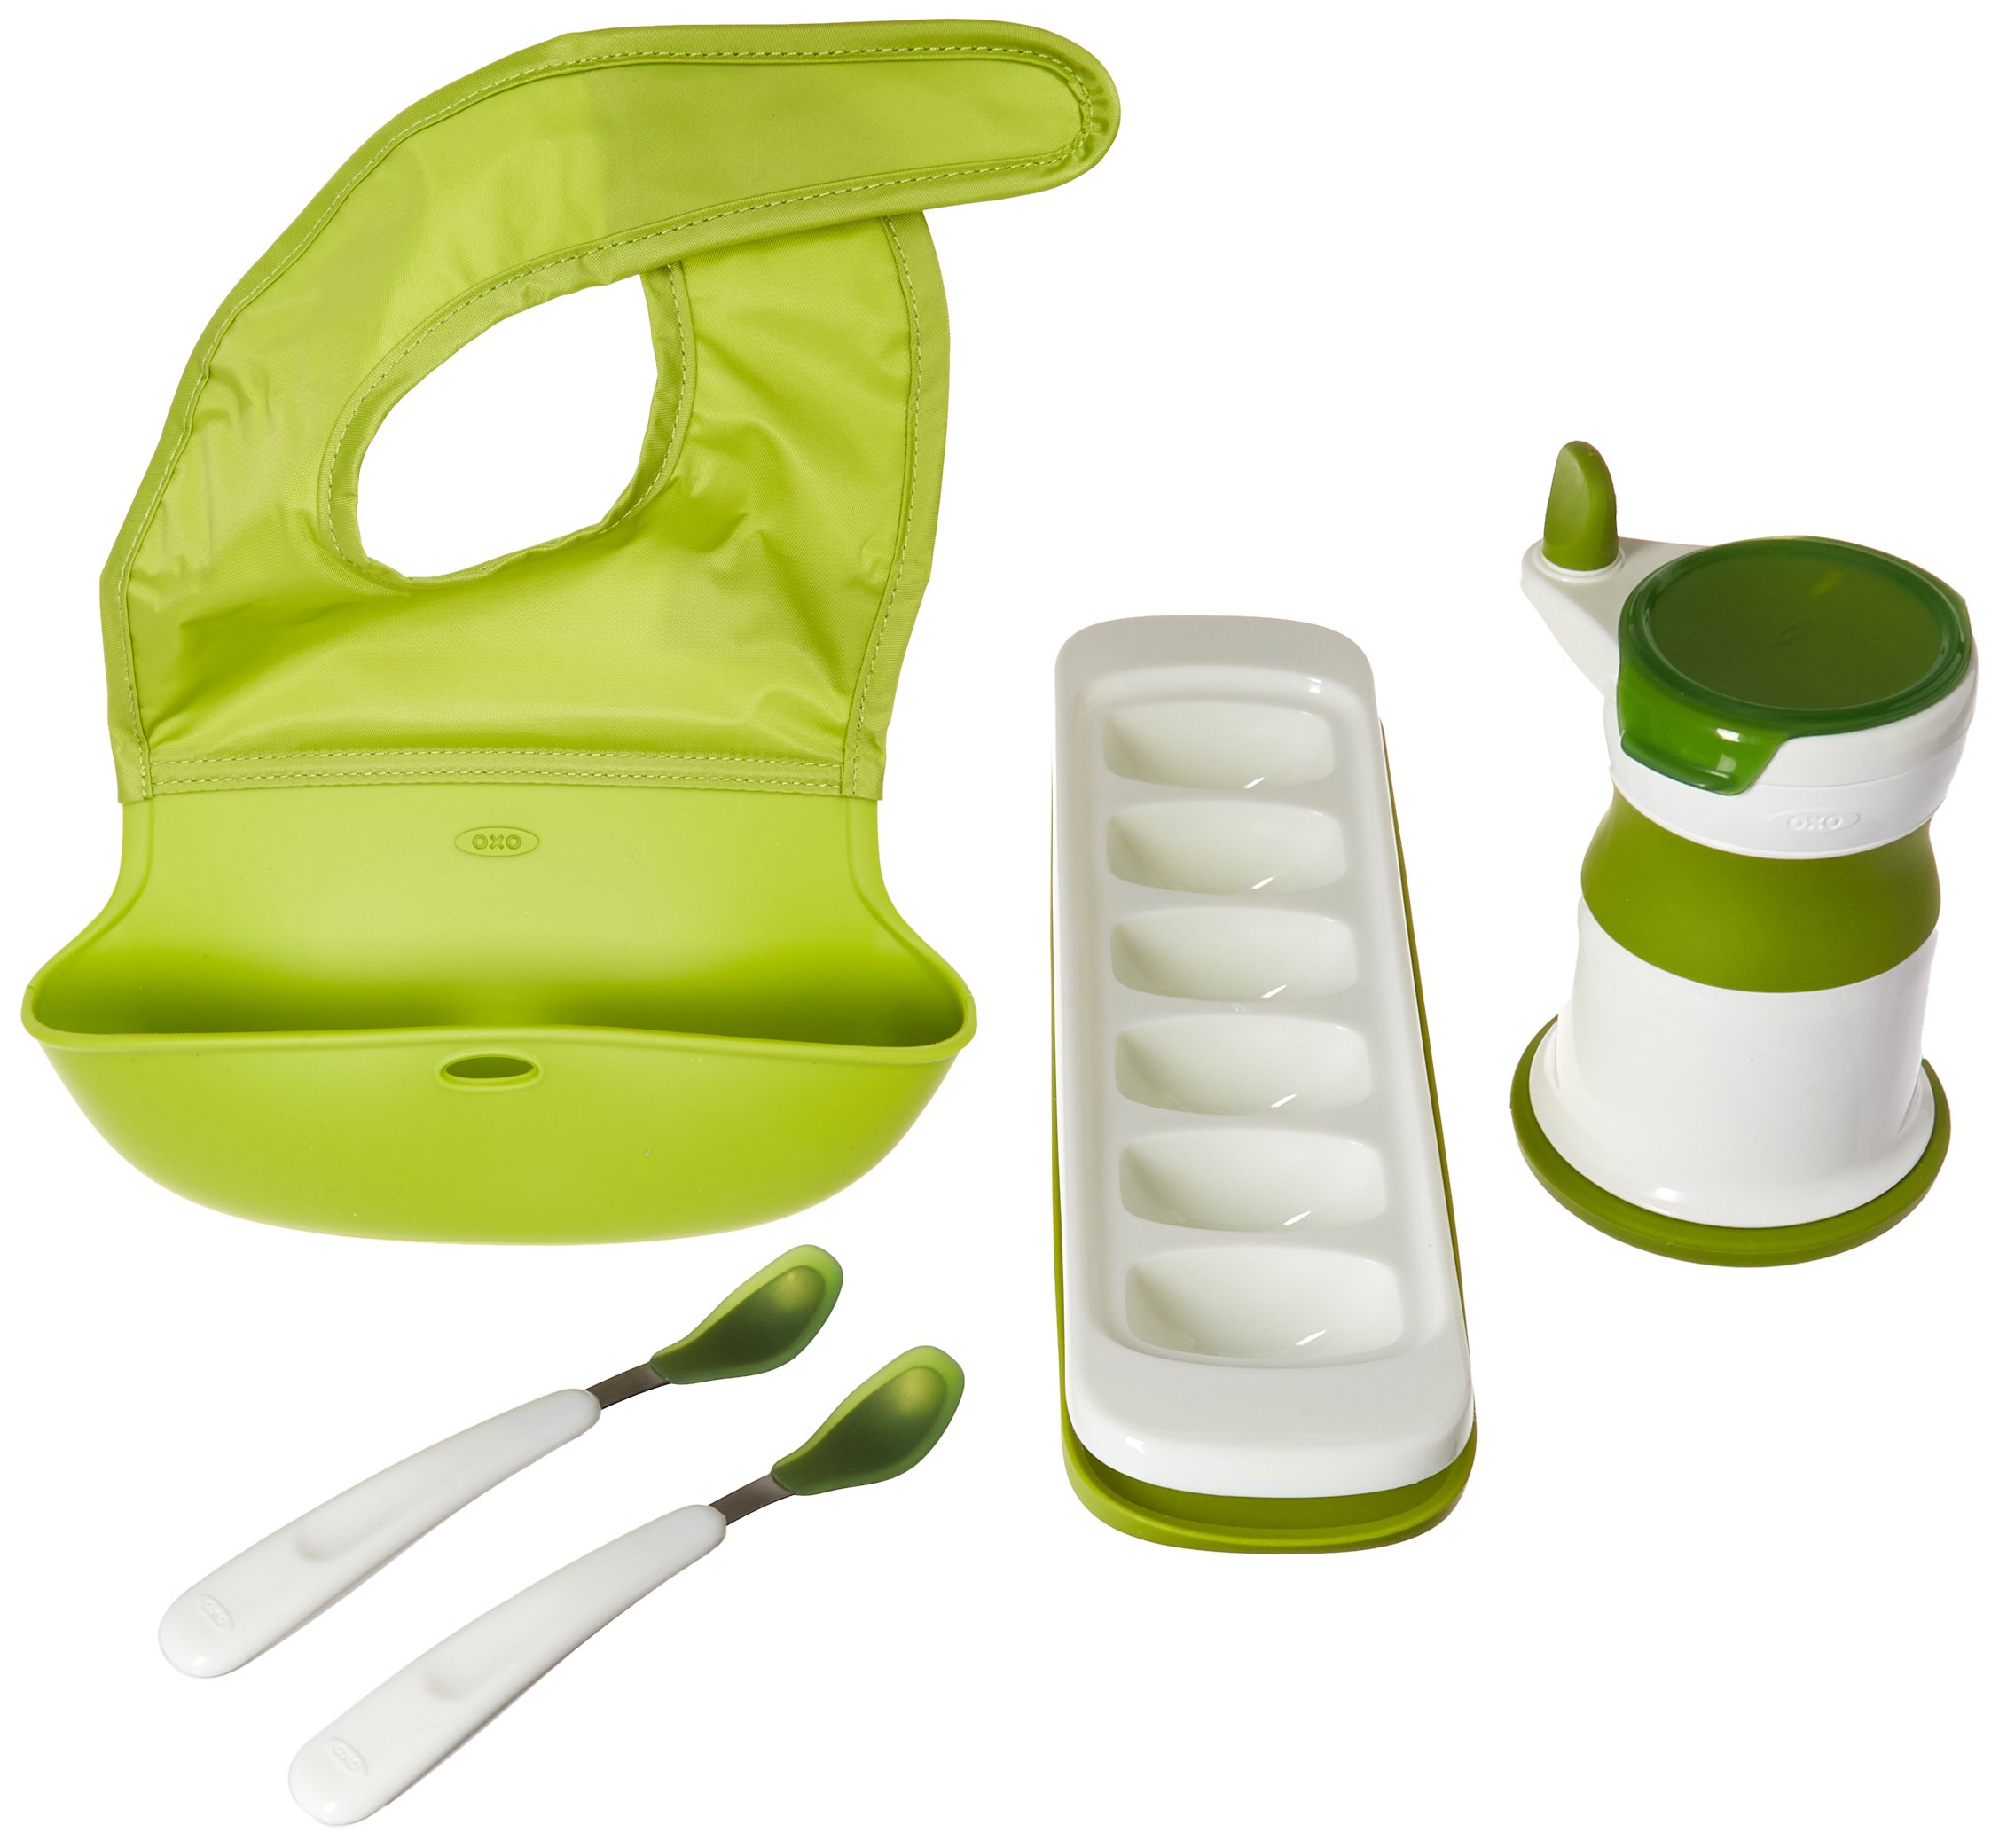 OXO Tot Mealtime Essentials Value Set